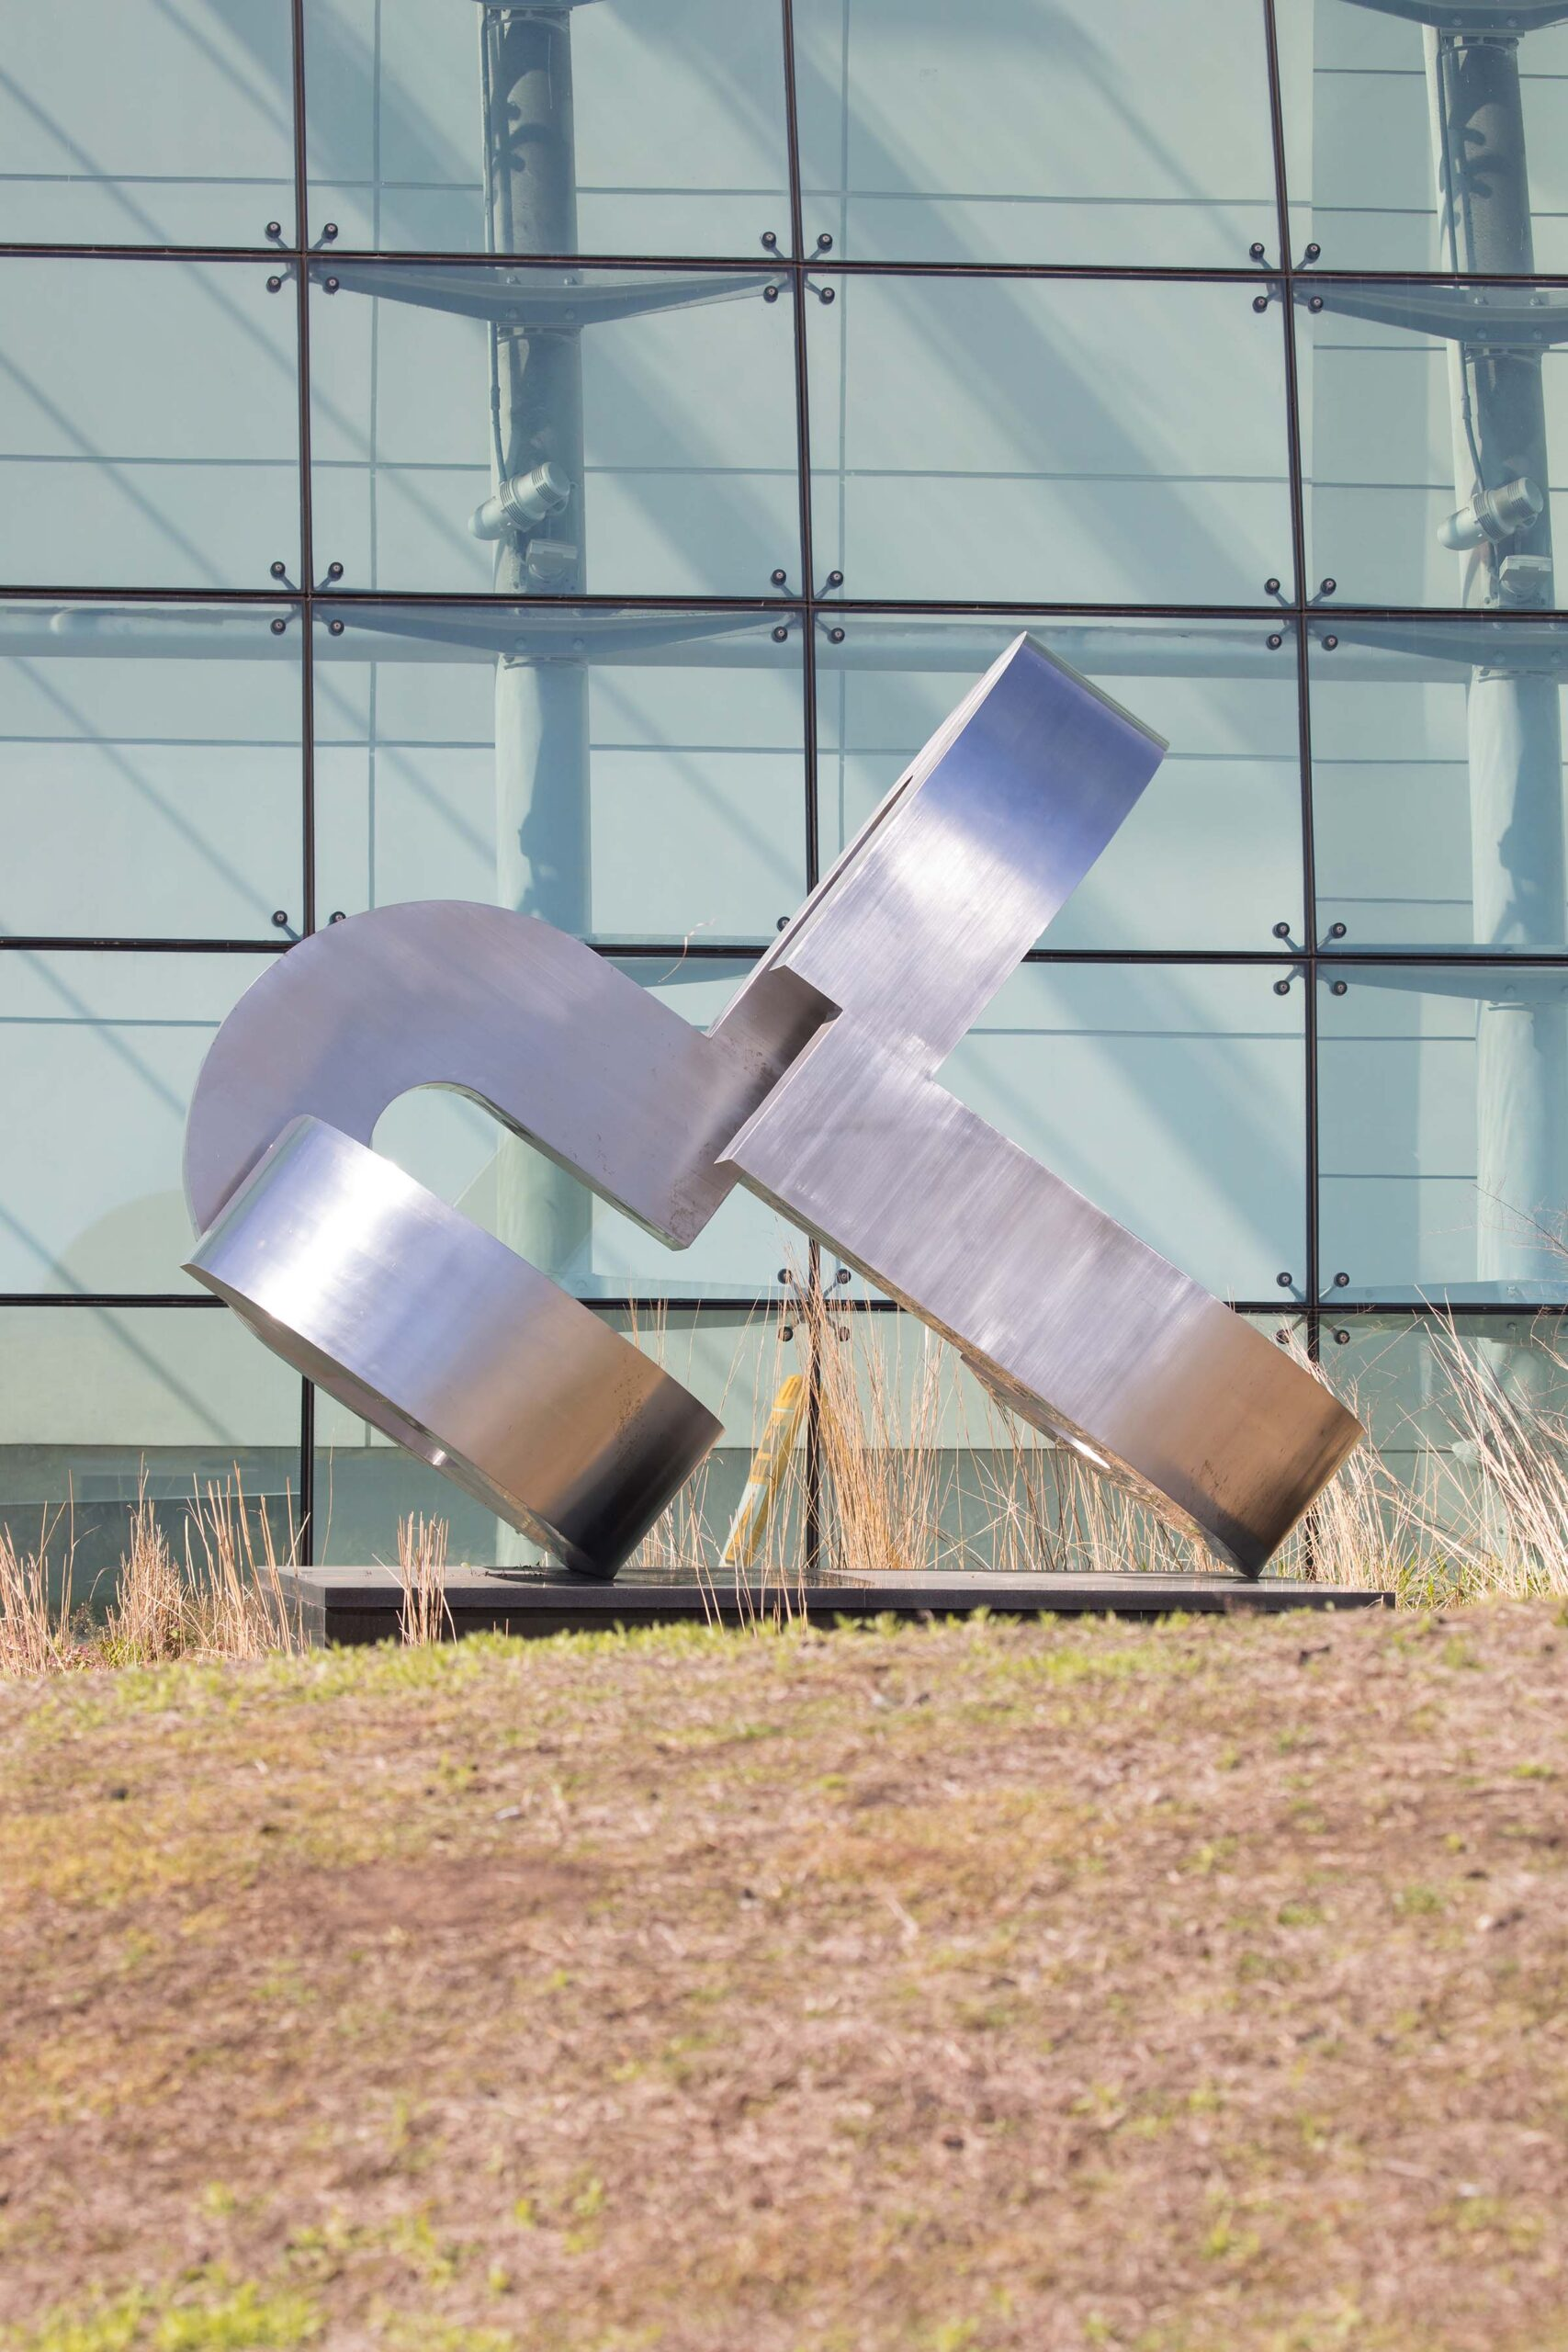 The art piece SENES sits on Pier 79, a steel structure with round edges connected to each other